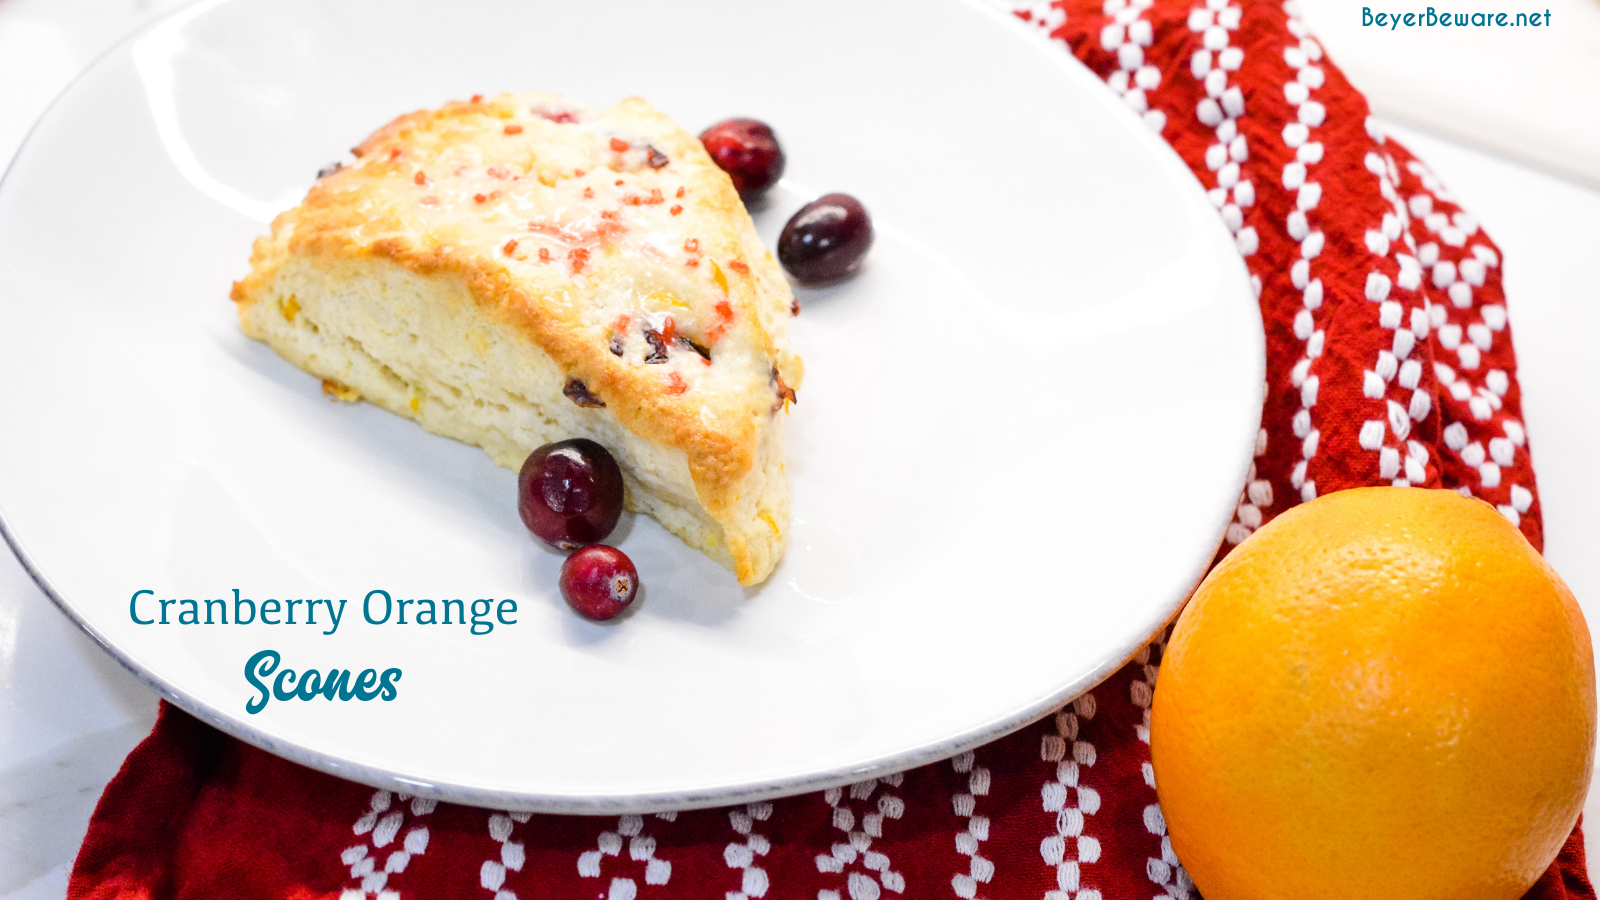 Cranberry orange scones are one of my favorite Starbucks indulgences that I now make at home with combination of fresh oranges, cranberries, and dried cranberries.